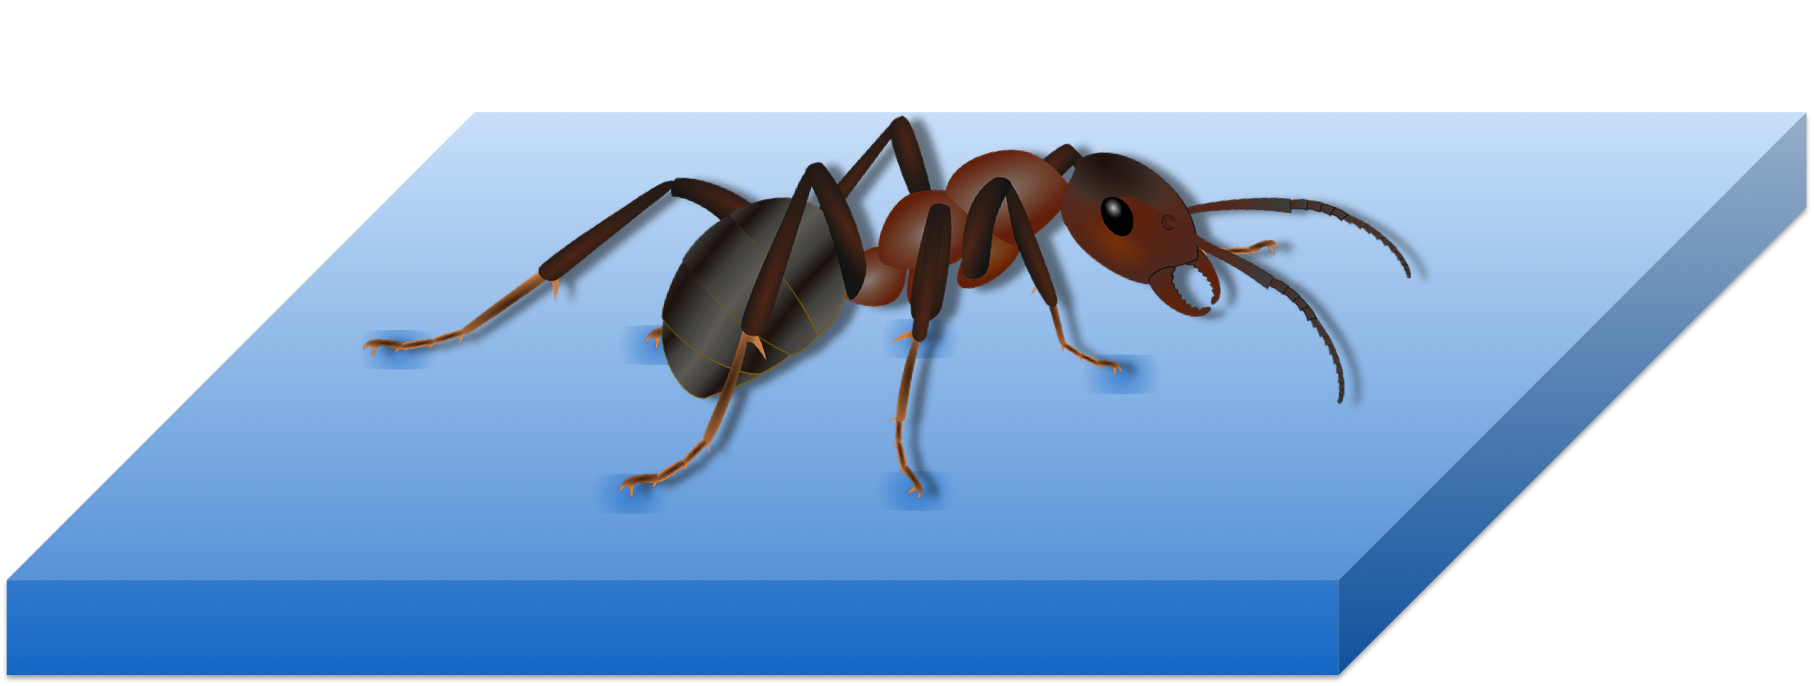 Figure 18.   Insects can walk on water due its cohesive property.